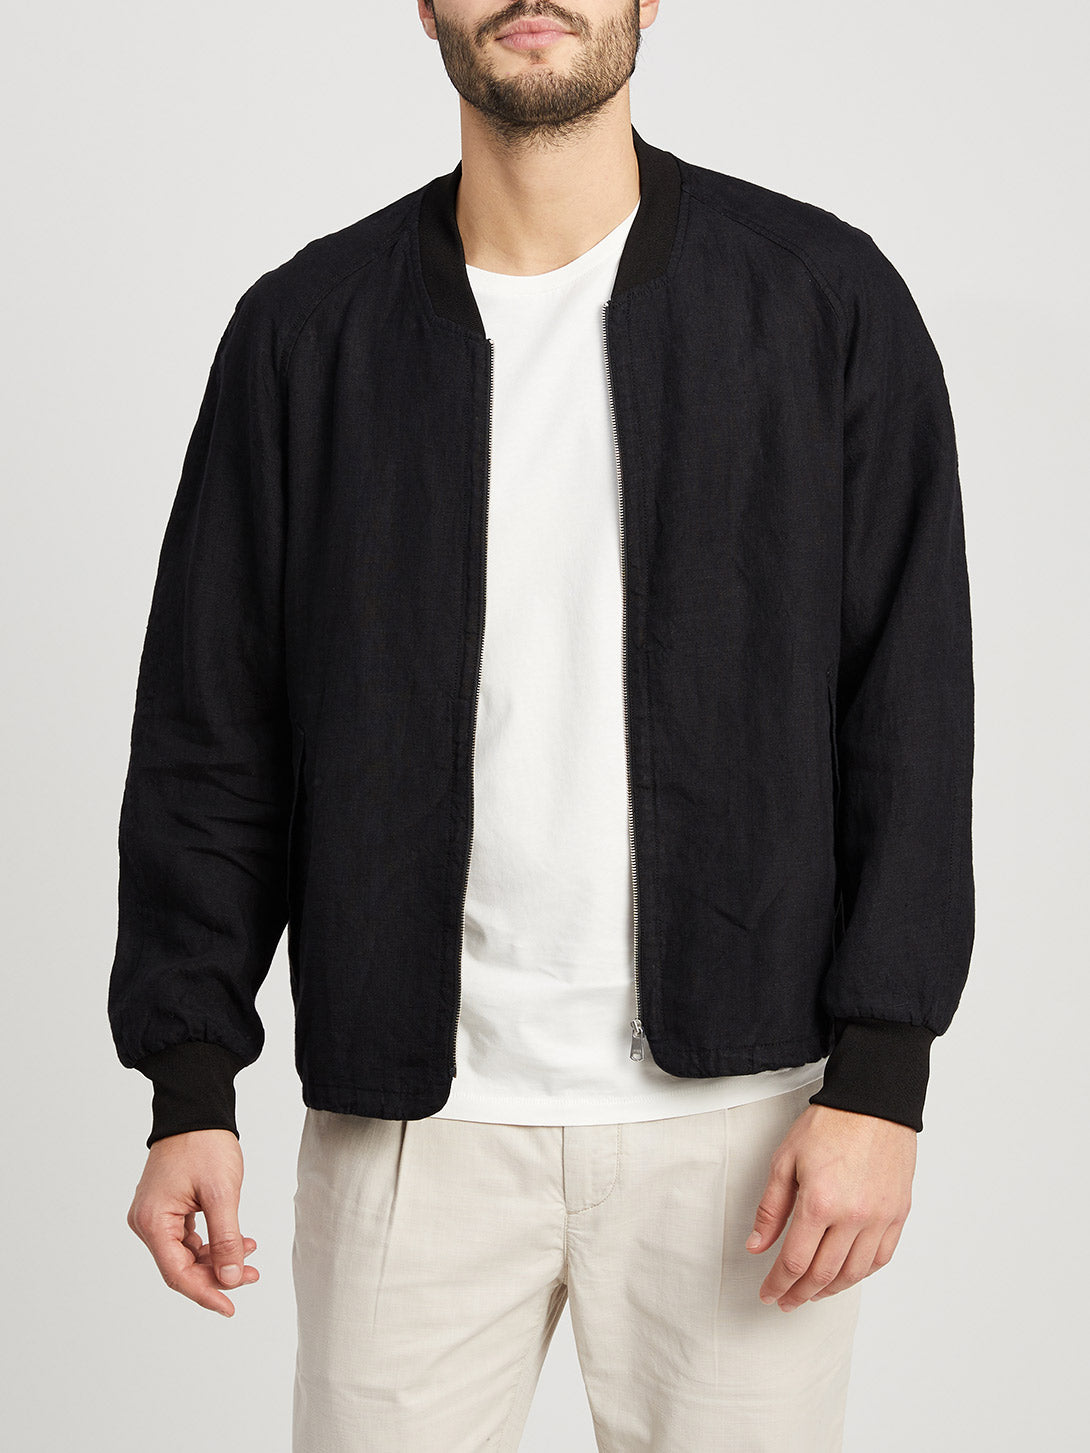 JET BLACK jackets for men lora bomber ons clothing